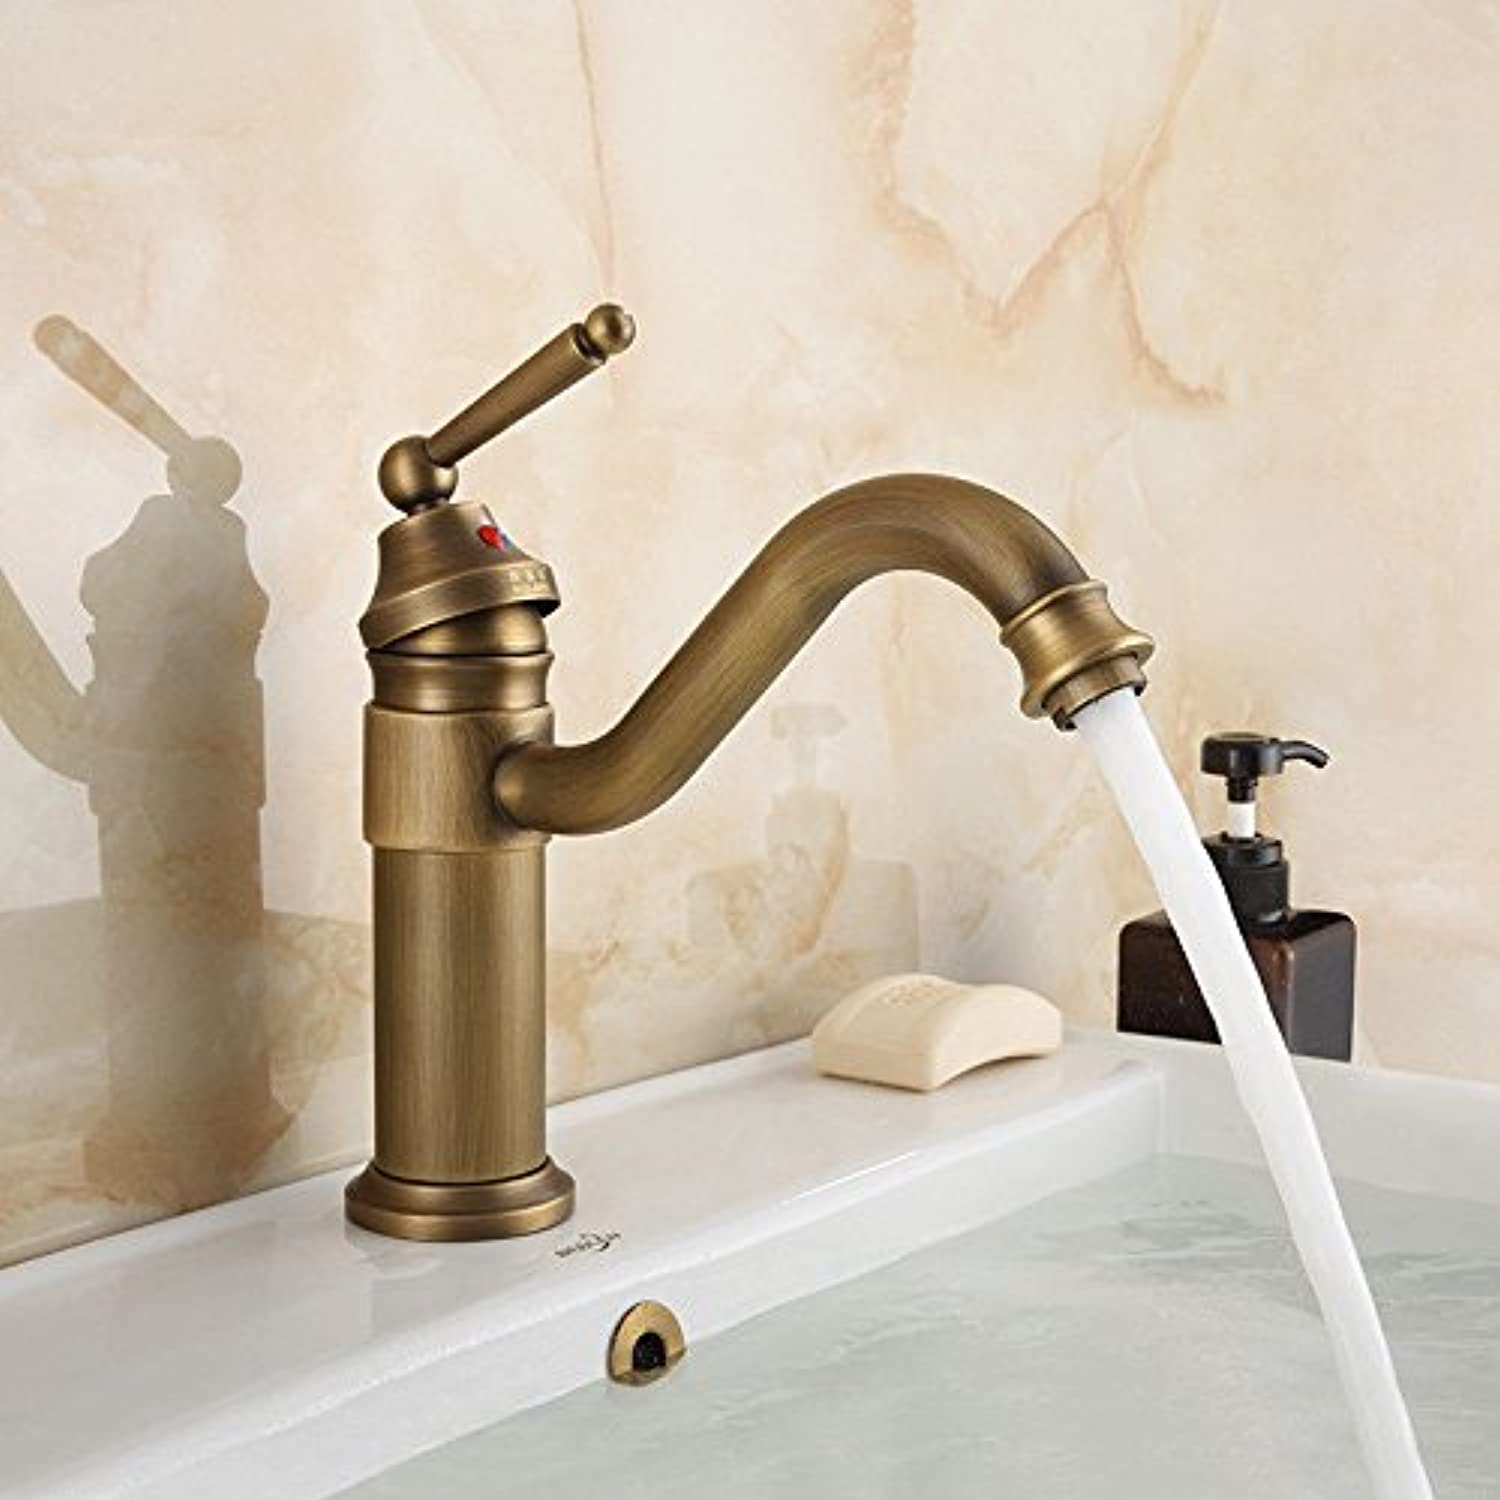 AQMMi Bathroom Sink Faucet Basin Mixer Tap Swivel Single Handle Hot and Cold Water Single Hole Basin Sink Tap Bathroom Bar Faucet